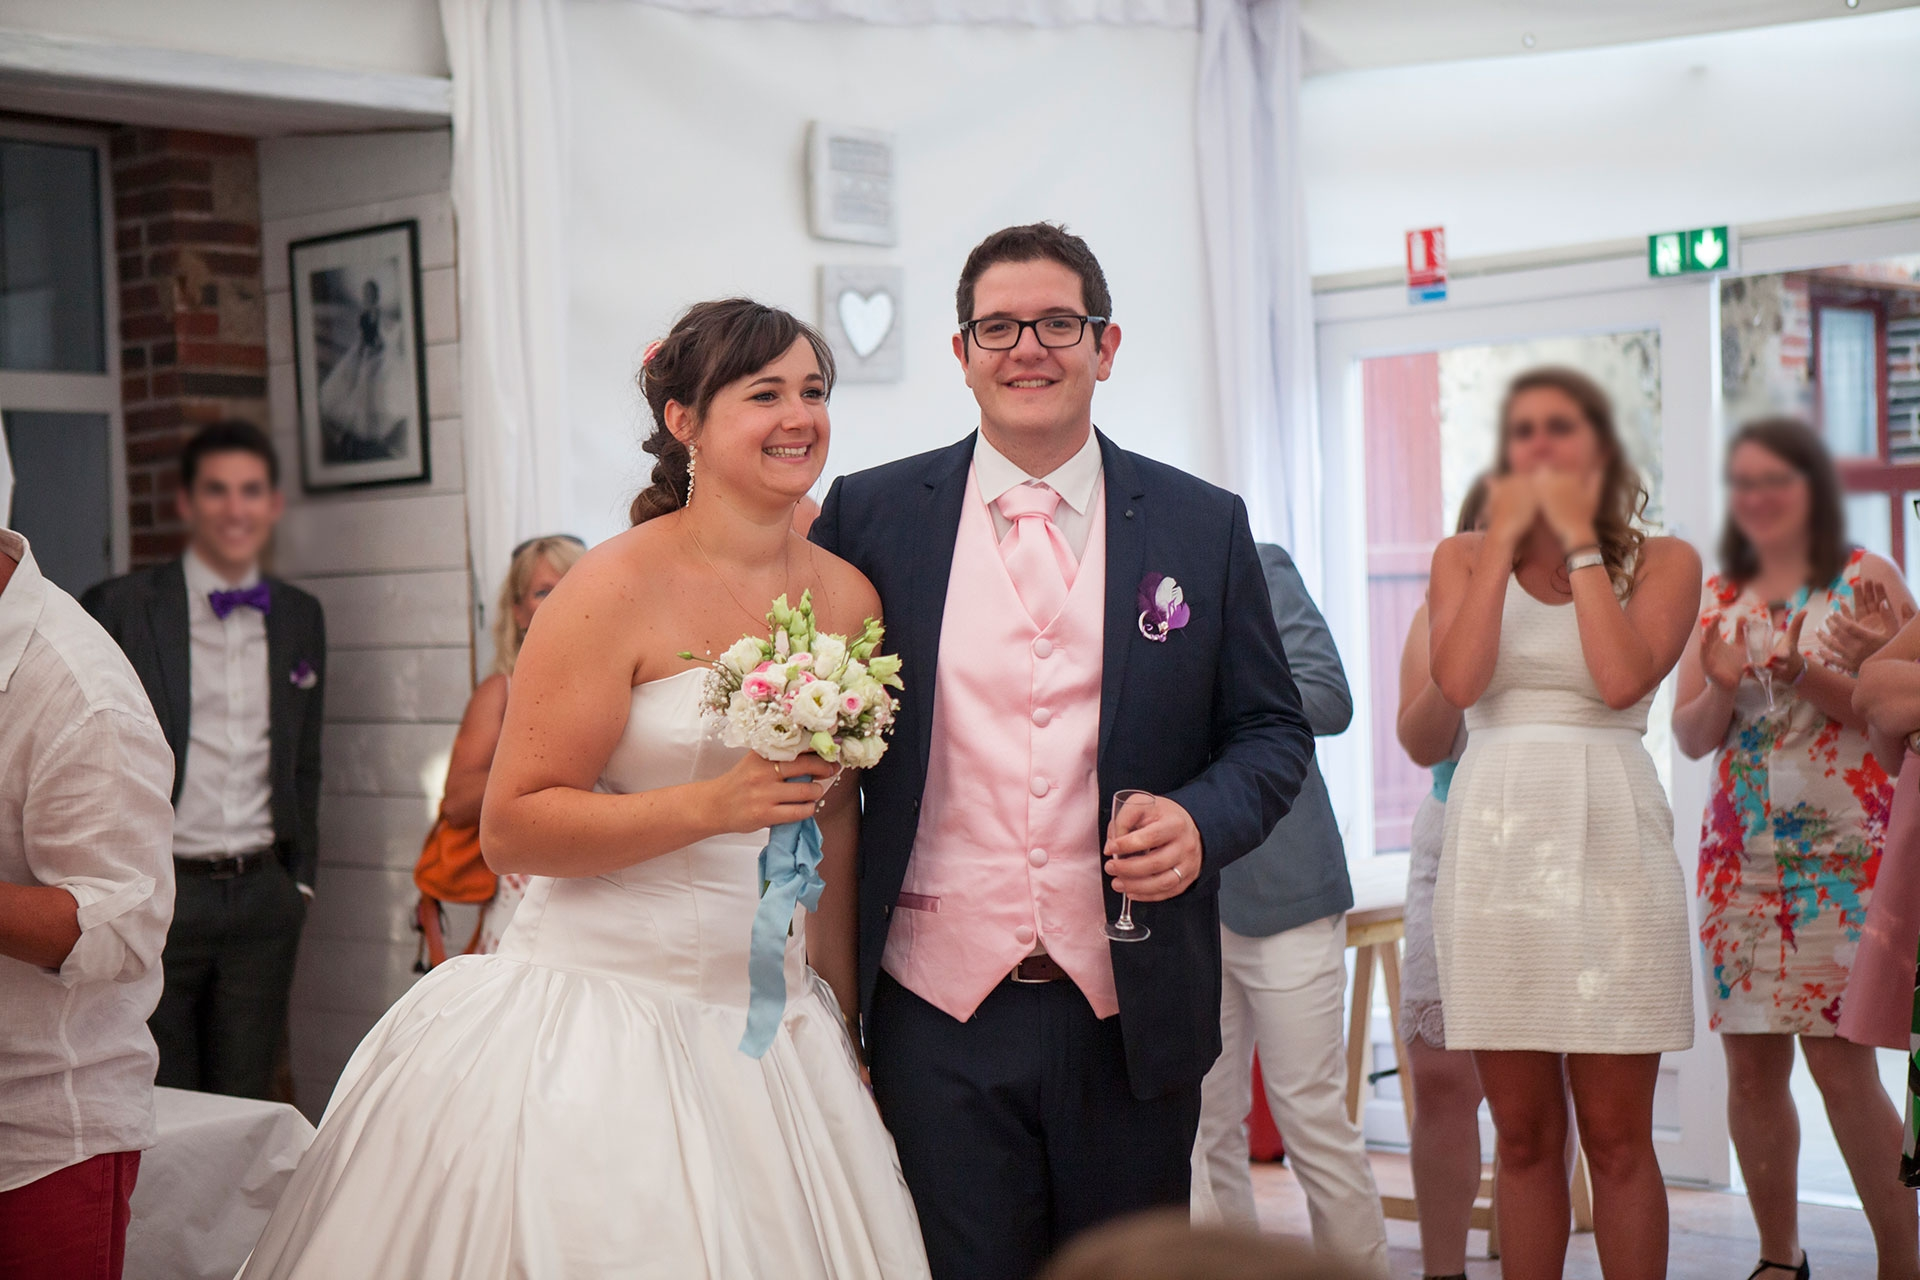 particuliers-evenements-mariages-oui-france&philippe-70